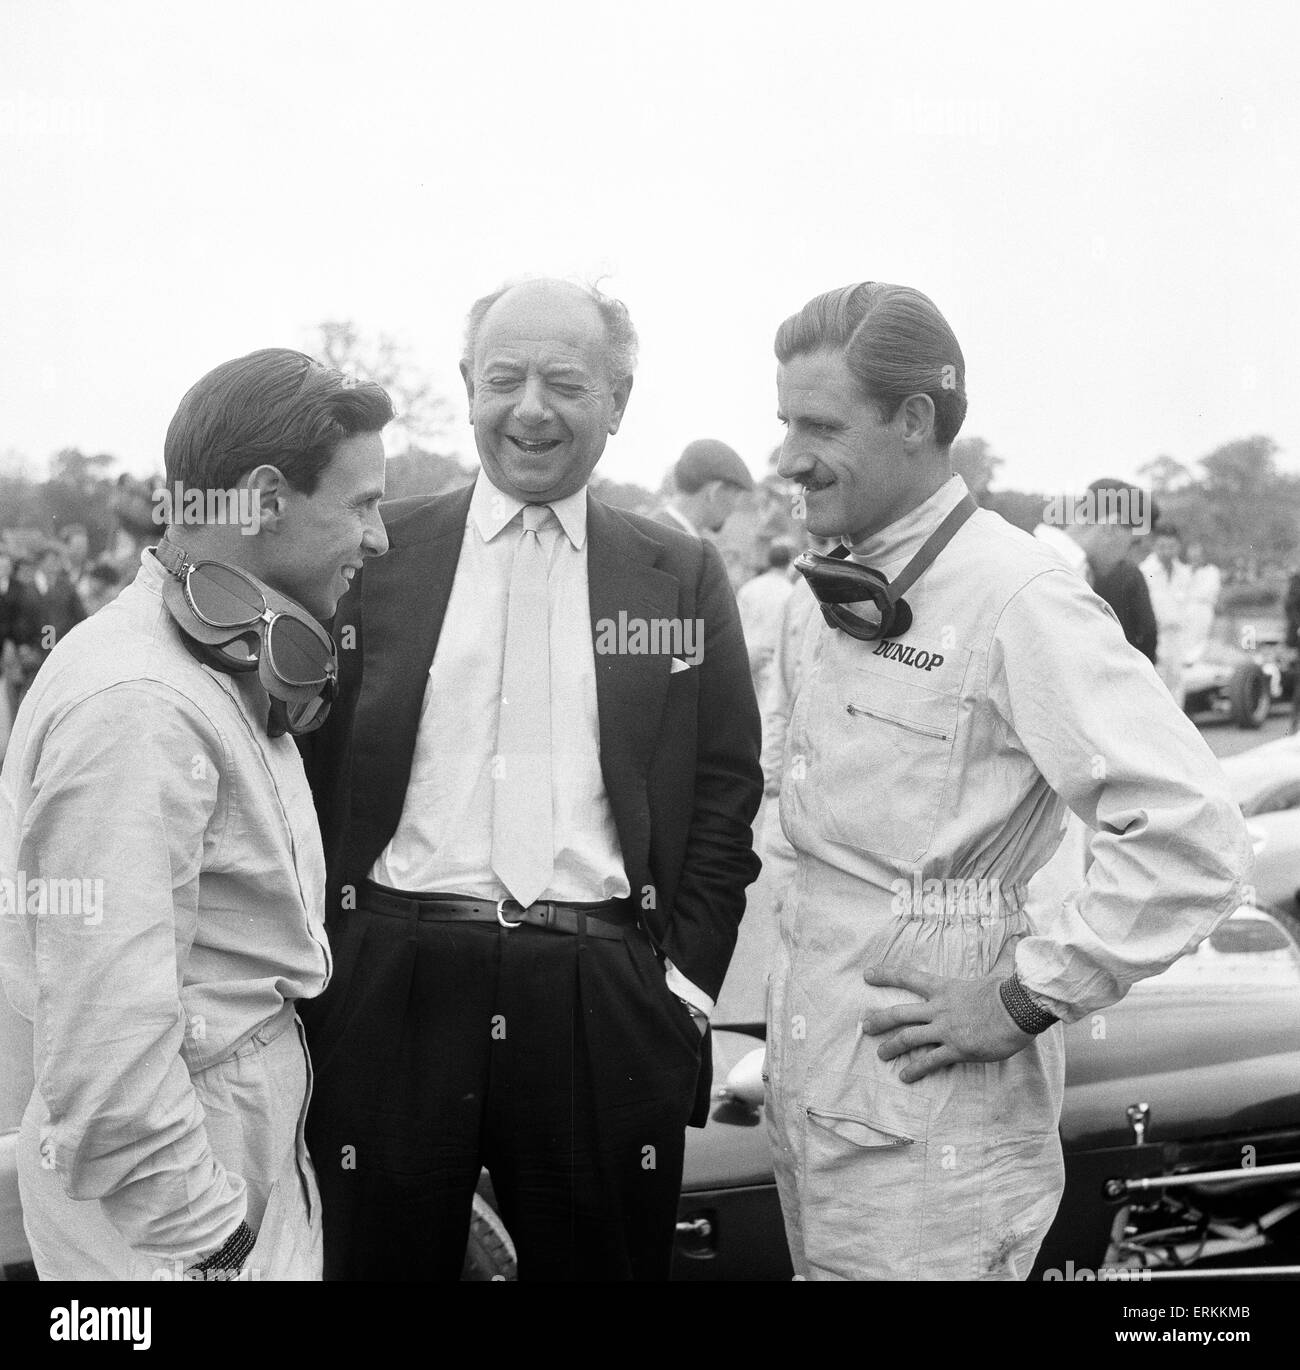 Raymond Mays, former racing driver and entrepreneur, pictured with Jim Clark & Graham Hill, at Racing Meeting, - Stock Image